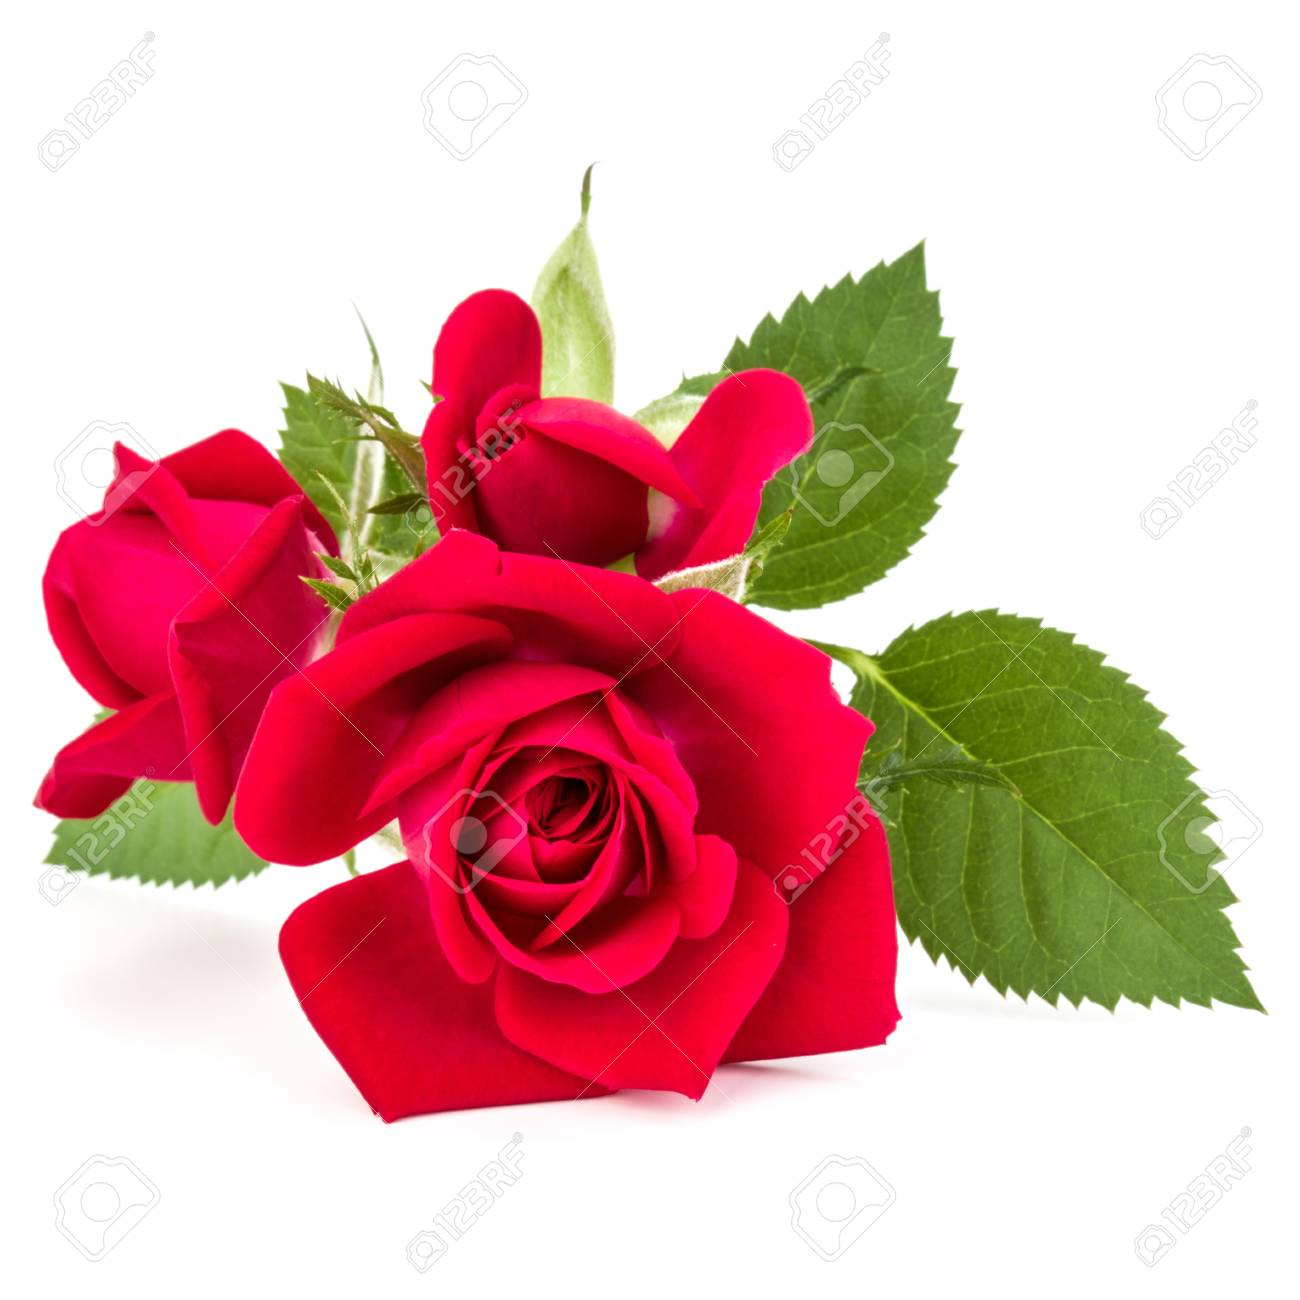 Red Rose Flower Bouquet Isolated On White Background Stock Photo